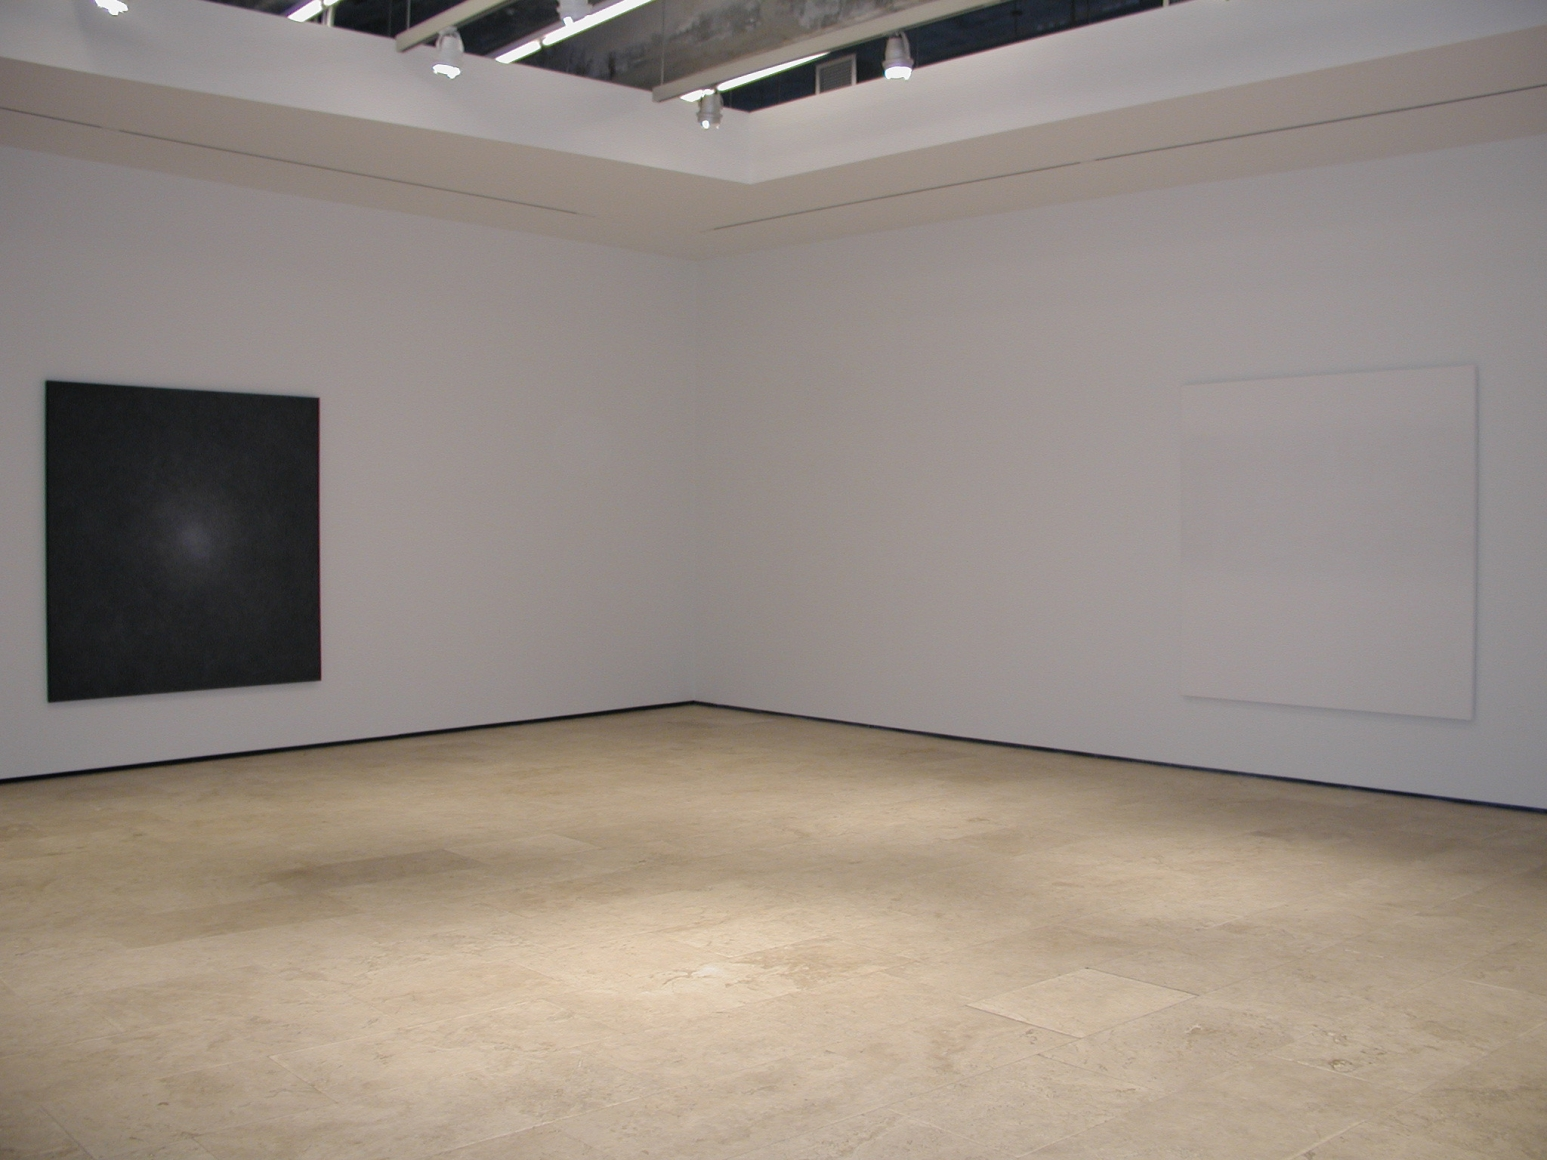 Installation view of Shirazeh Houshiary exhibition in 2003 at Lehmann Maupin in New York, view 3